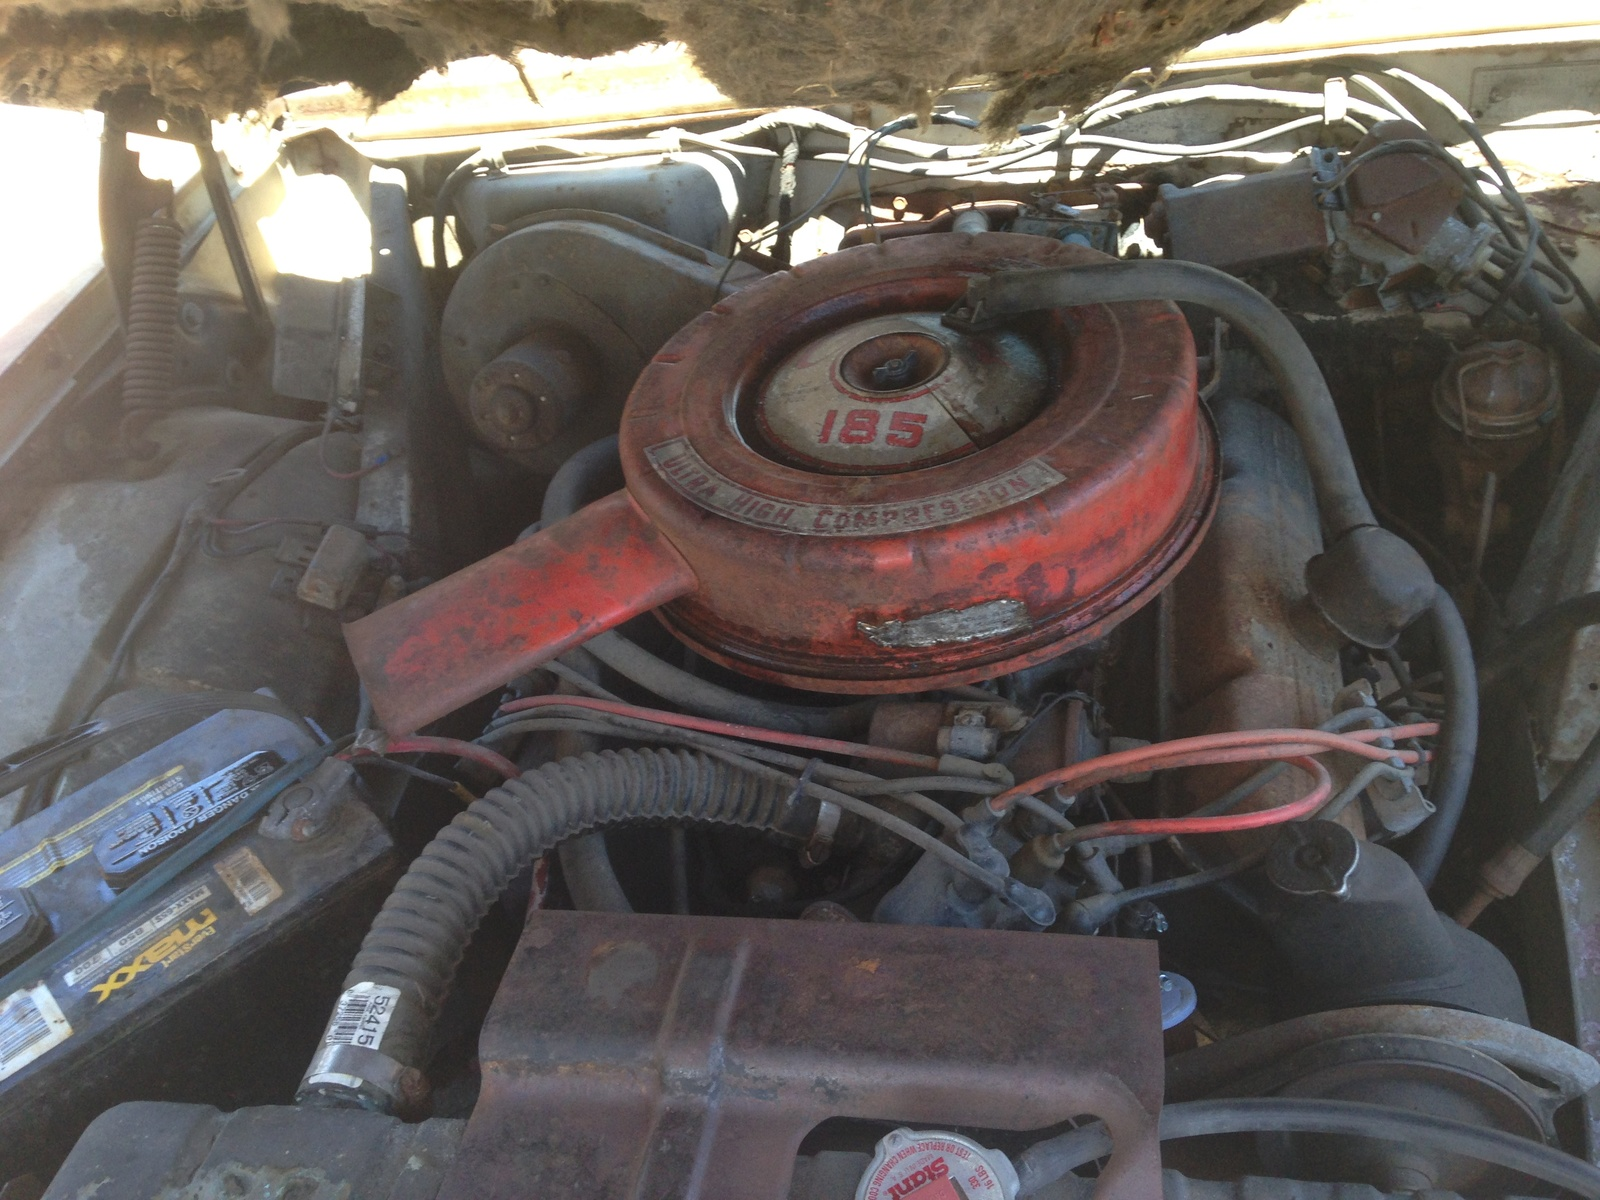 Oldsmobile Cutlass Questions - My 1962 olds f85 came without motor